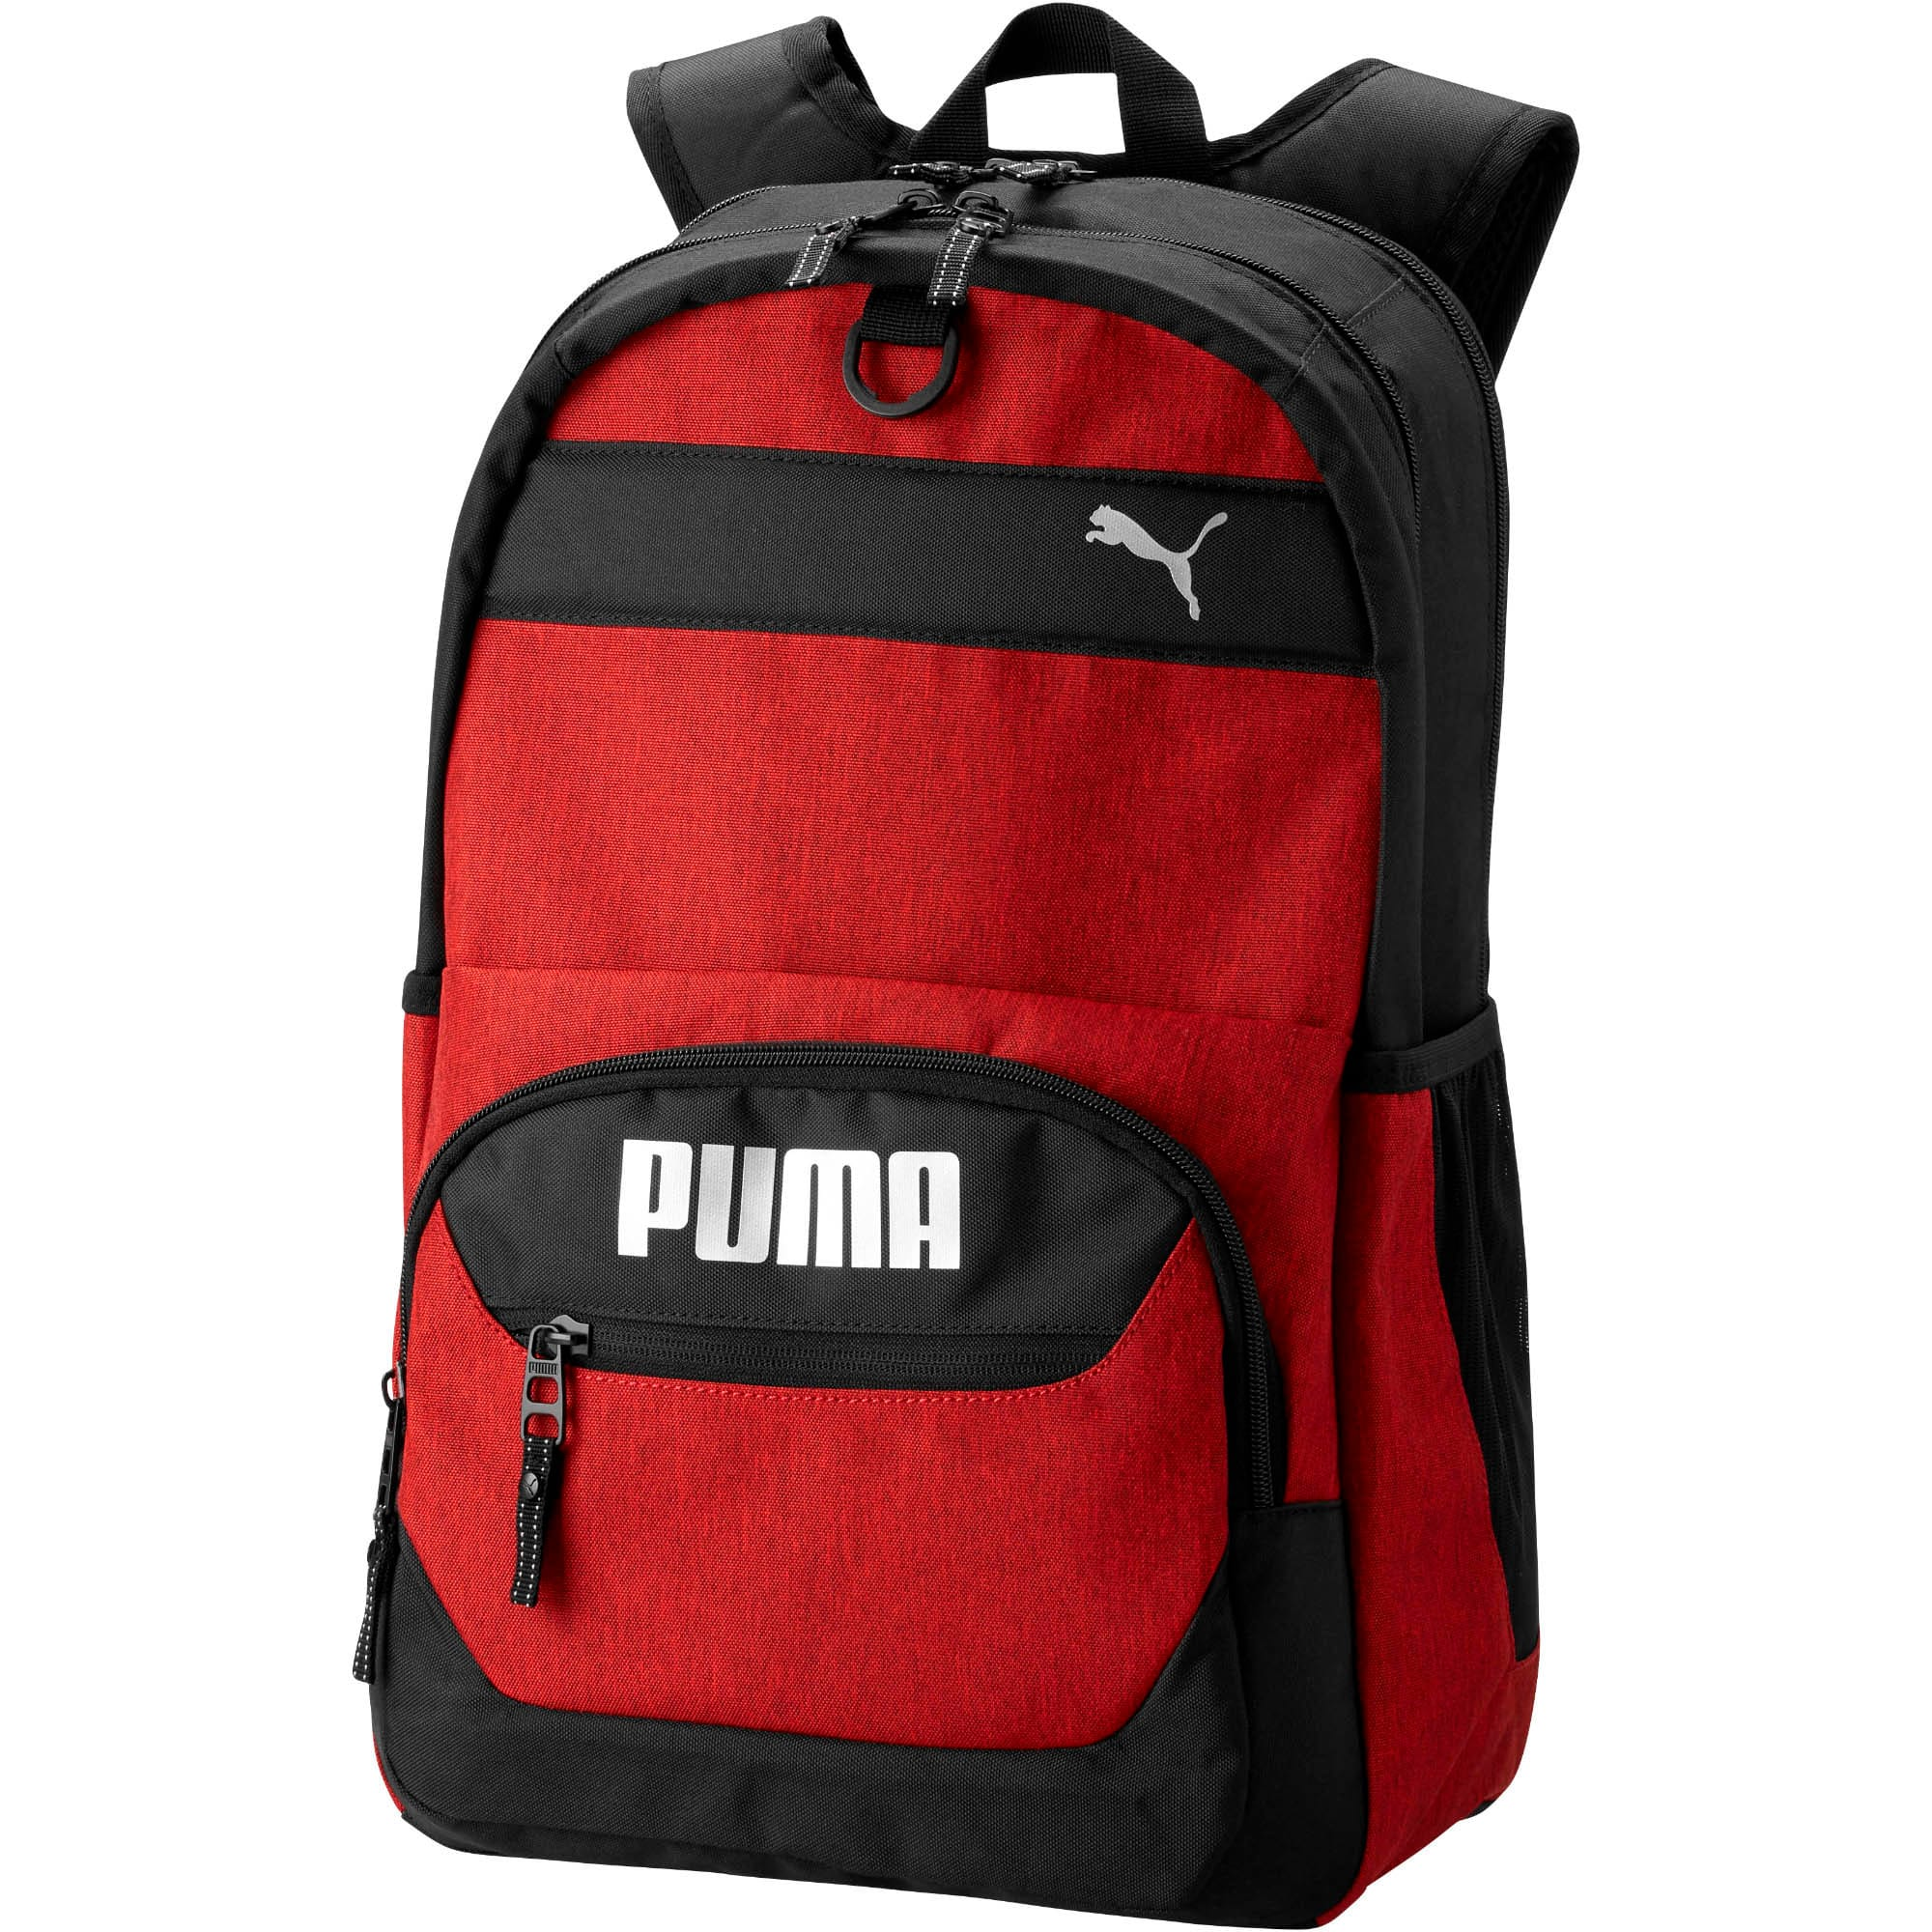 Thumbnail 1 of Puma Everready Backpack, Red/Black, medium